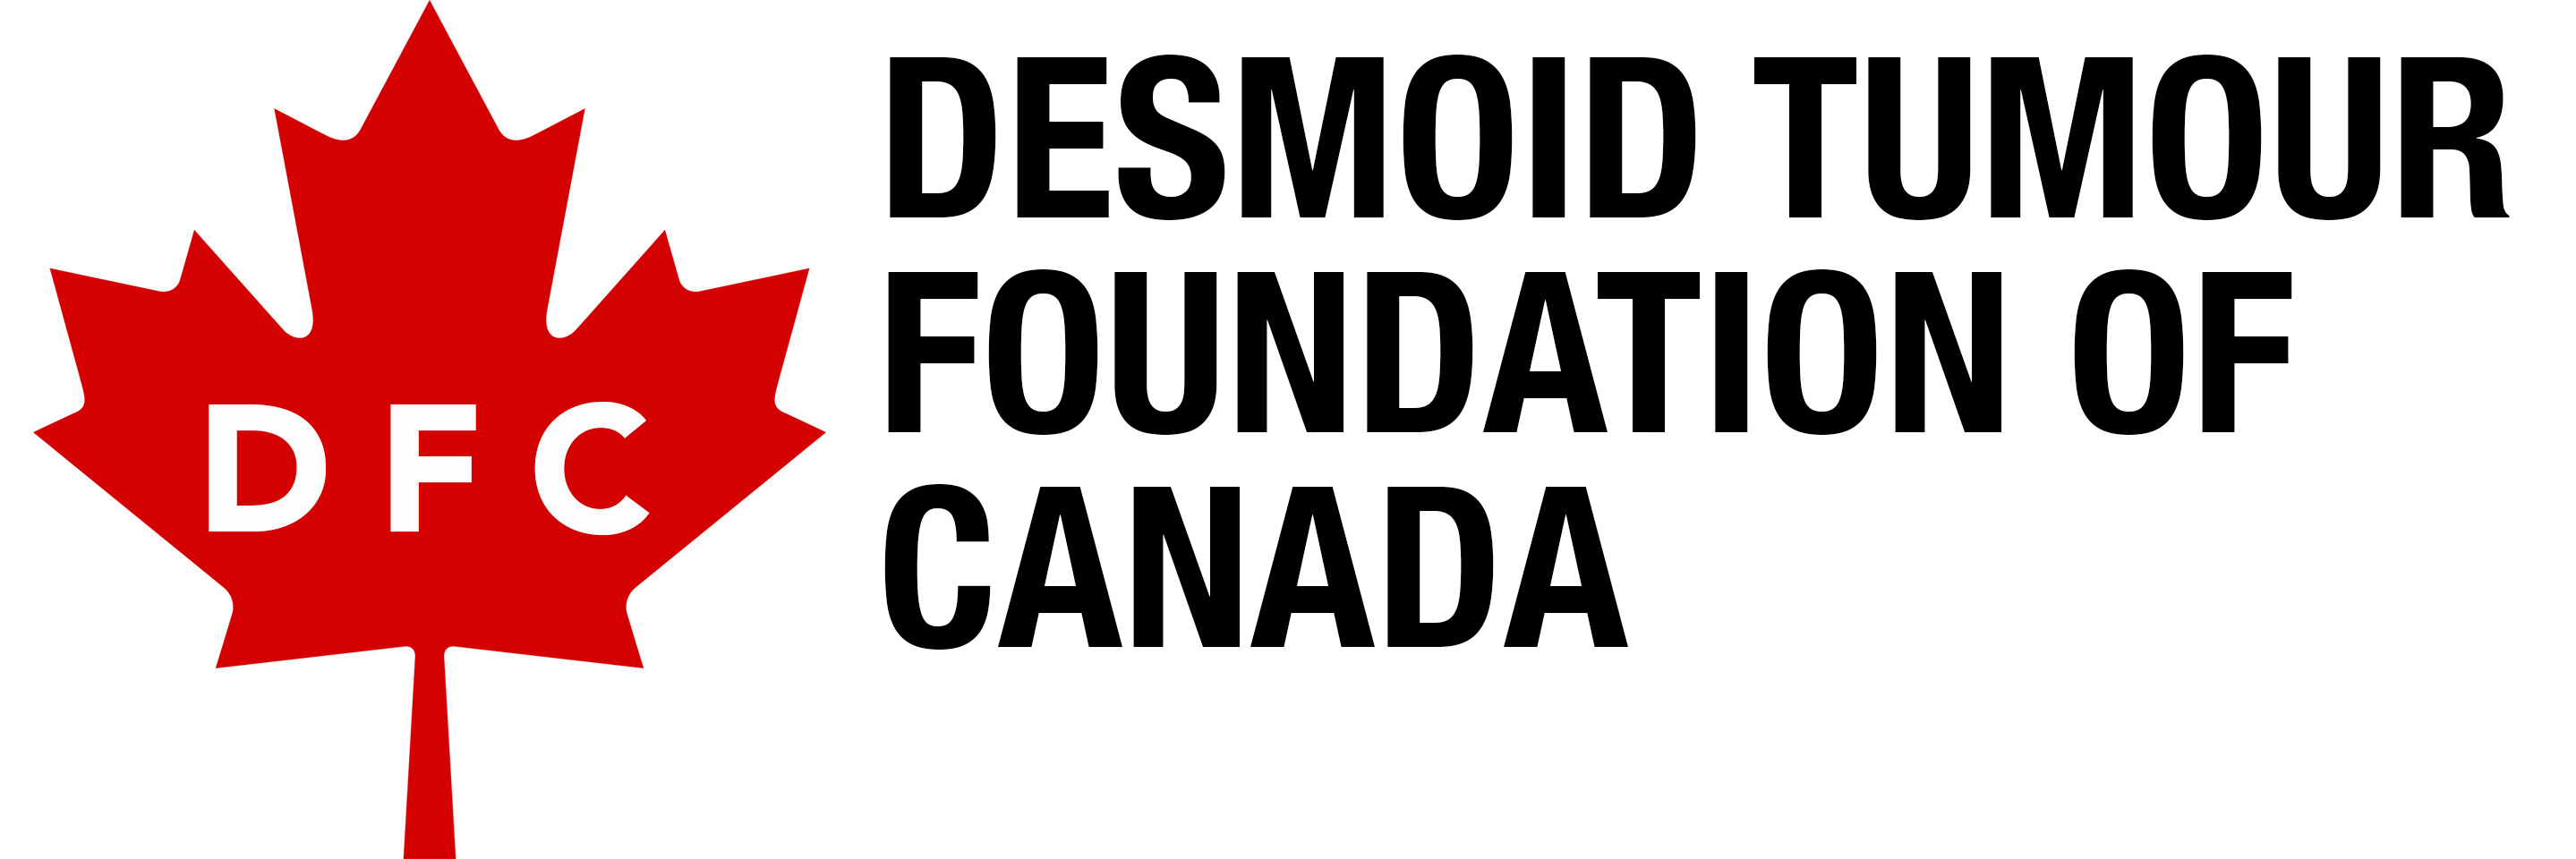 Desmoid Tumour Foundation of Canada